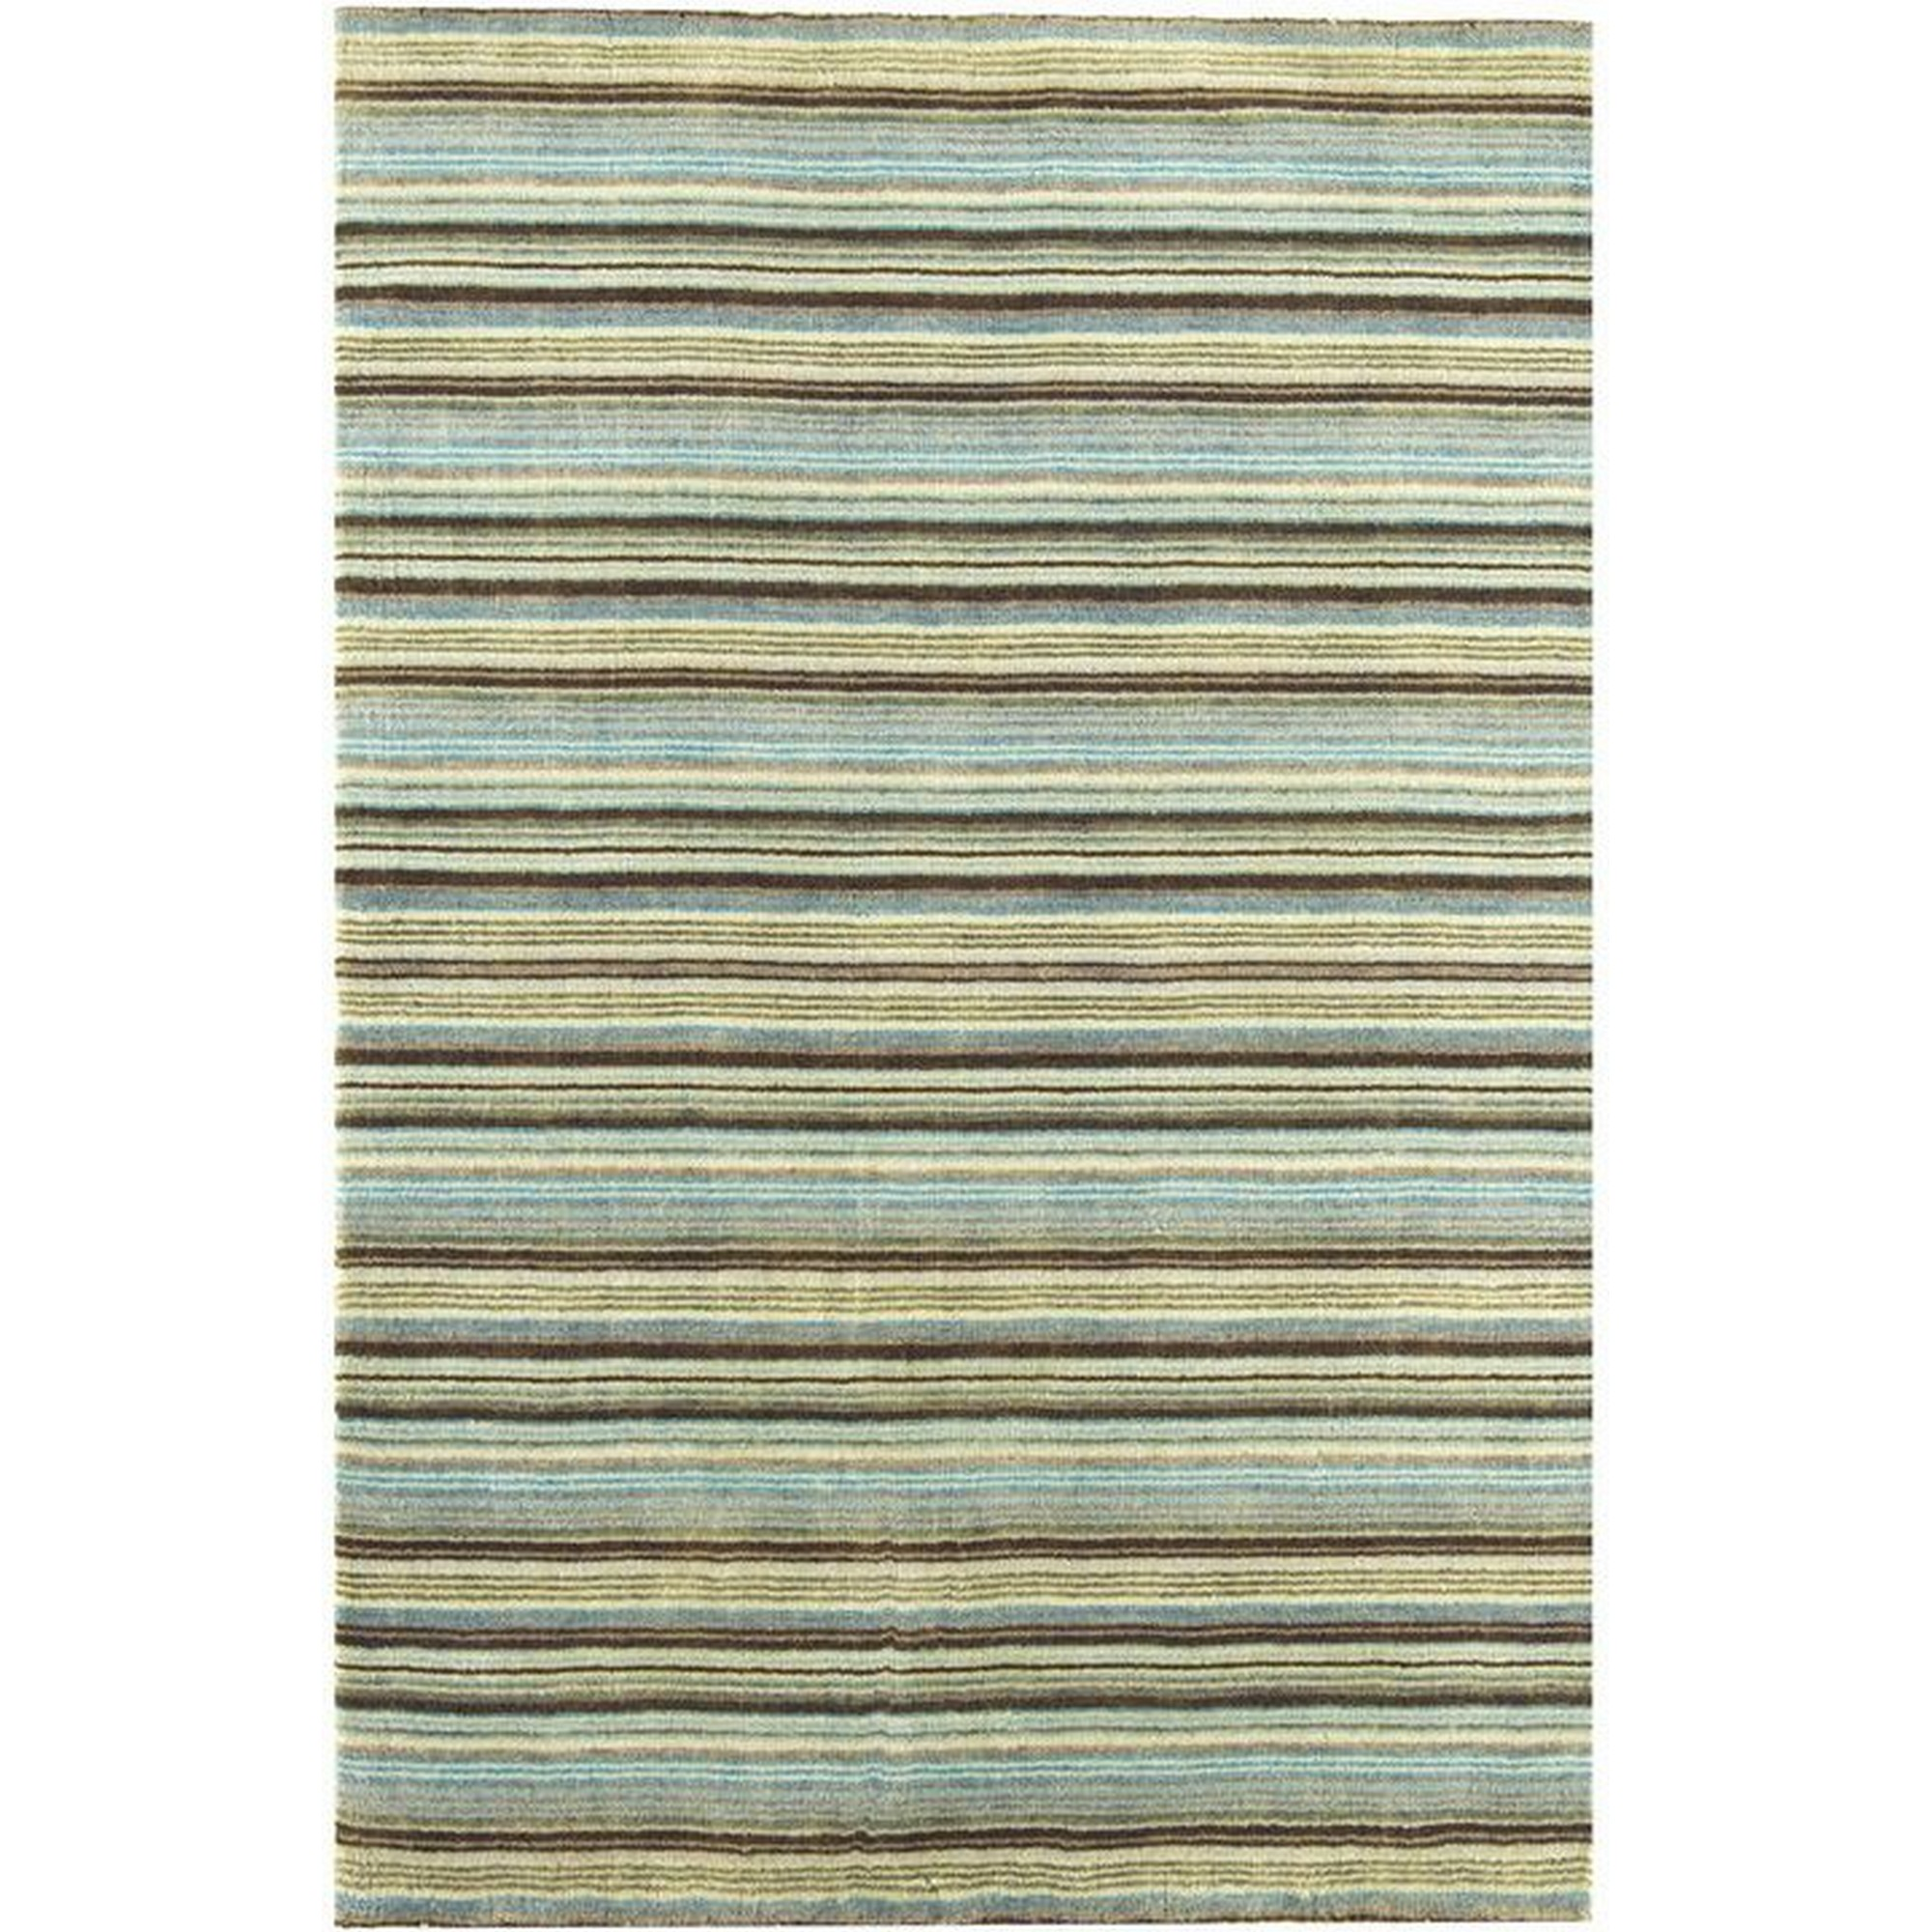 Joseph Rugs in Blue Green